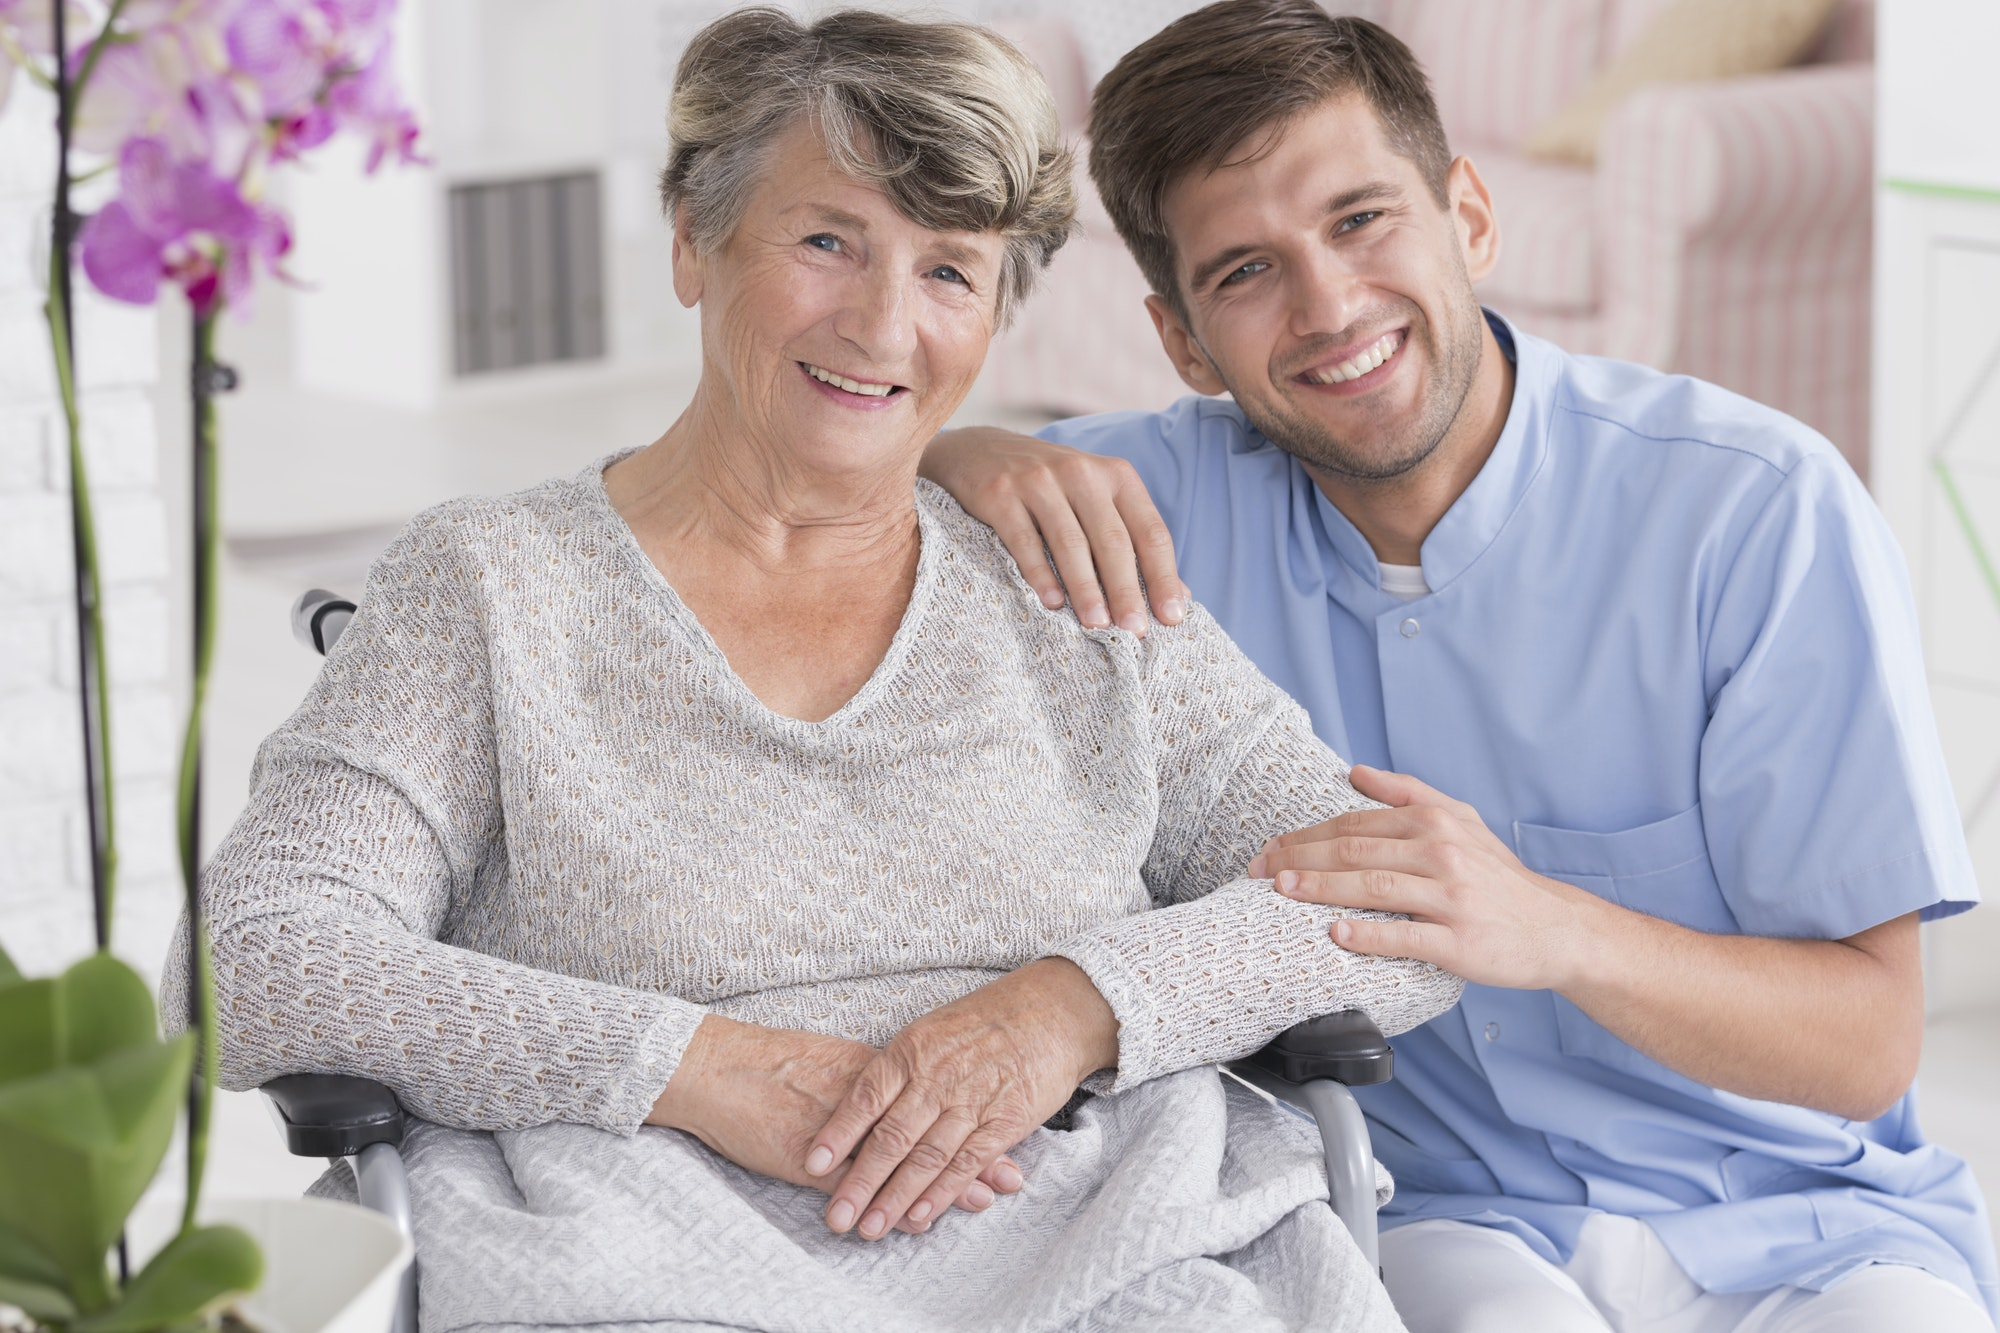 Smiling carer with senior in rest home